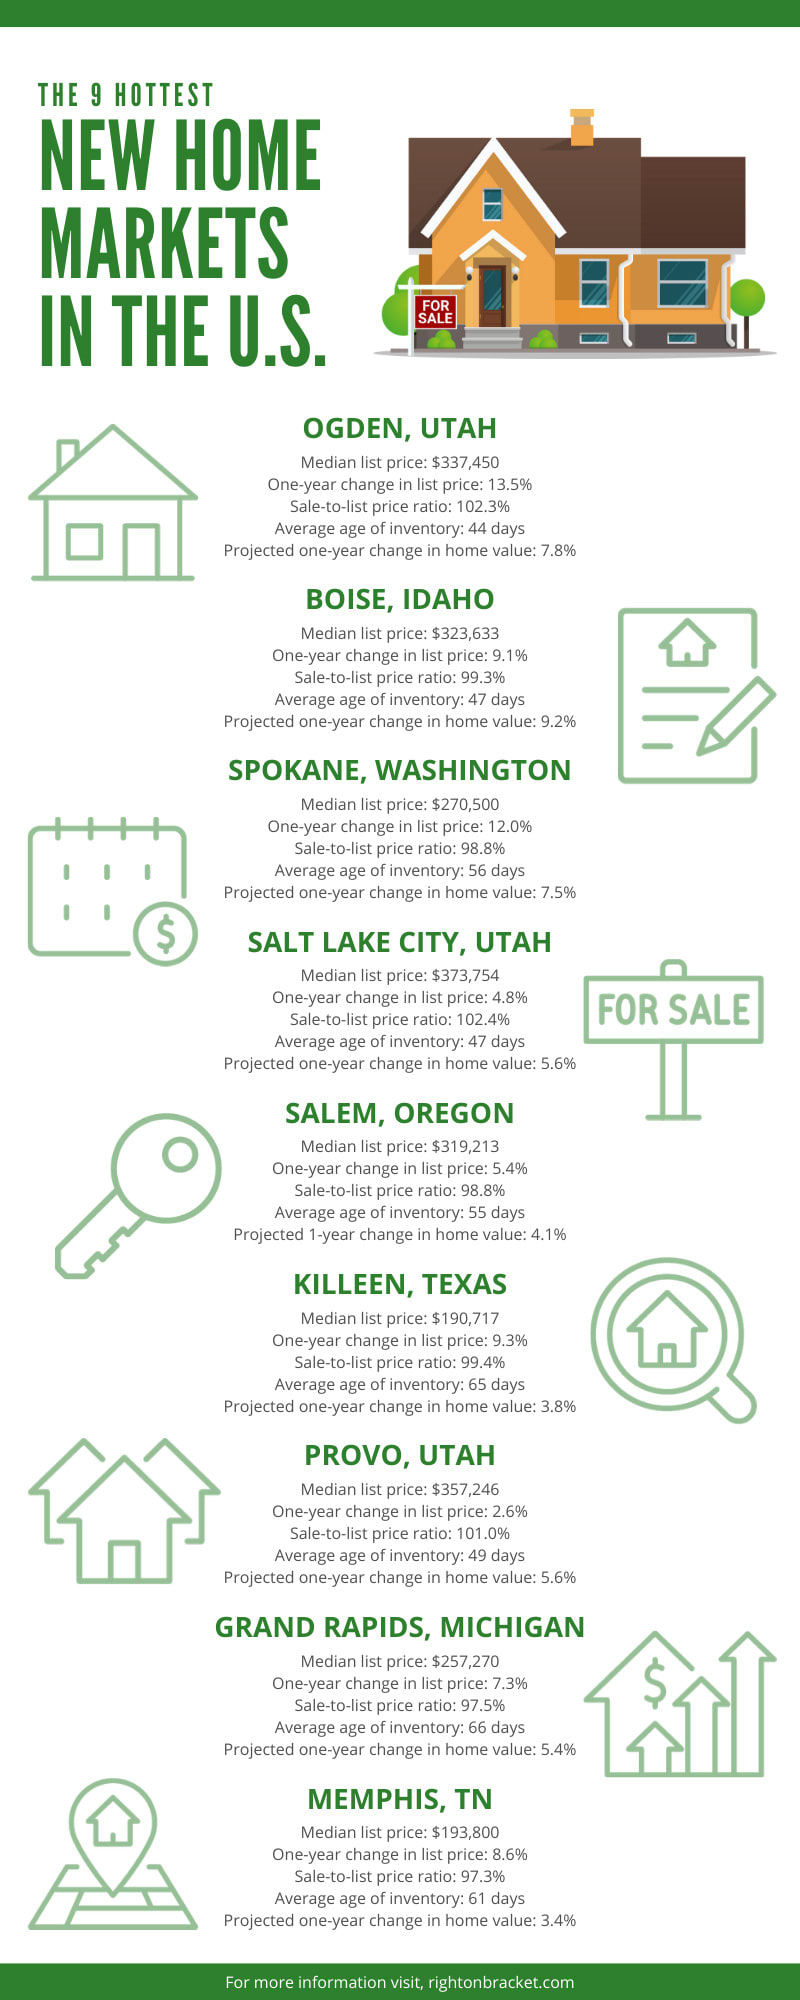 The 9 Hottest New Home Markets in the U.S. infographic